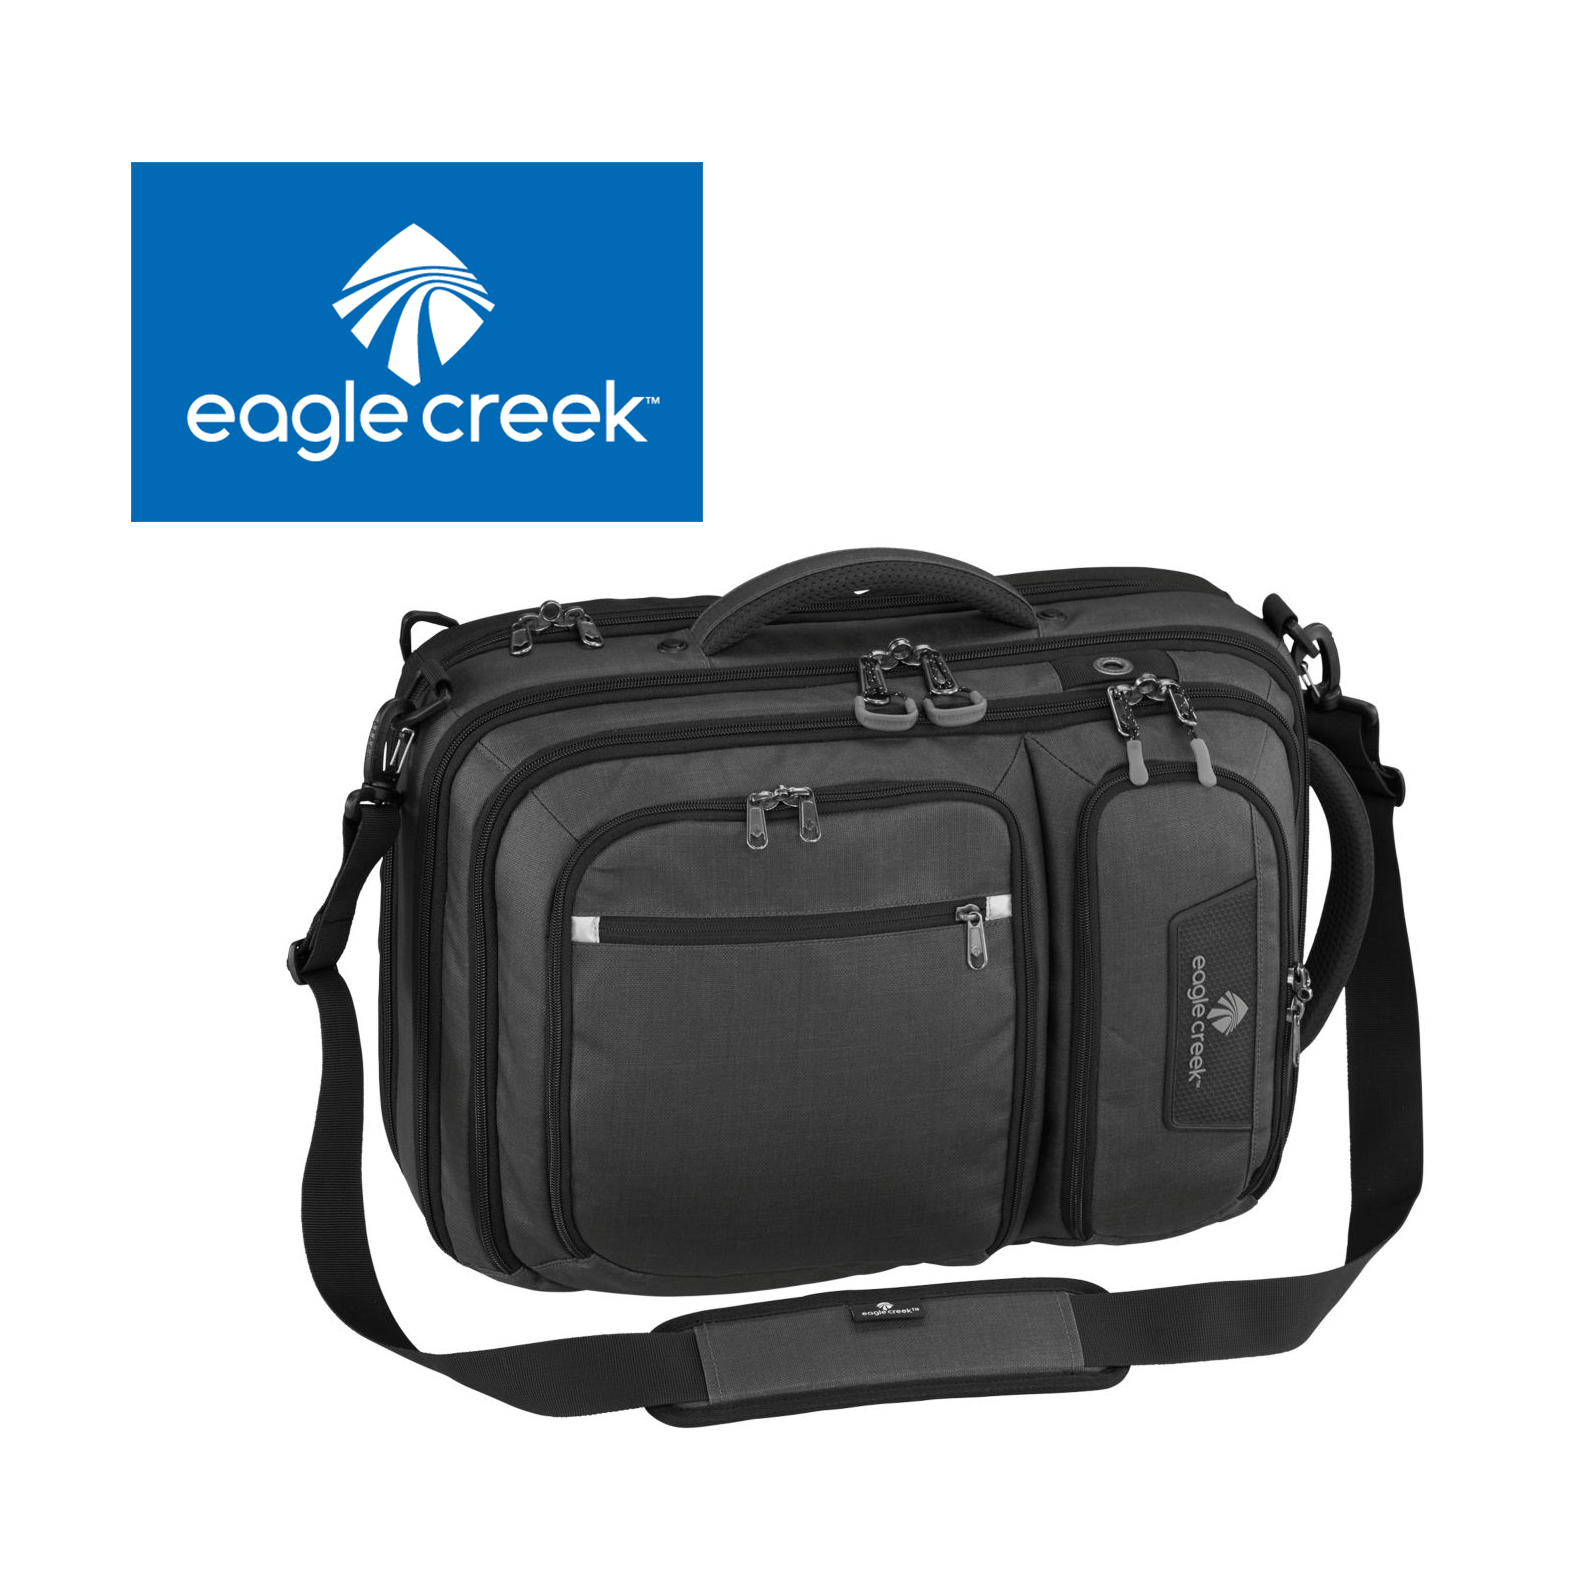 Convert A Briefcase & Compression Cube - This Checkpoint Friendly laptop brief works hard whenever and wherever you are. Complete with backpack straps when you need to be hands-free. Comes with 1 Converge Compression Cube that is a lightweight packing cube with an extra compression zipper for even more compression. So what are you waiting for?Retail: $250Donated by: Eagle Creek